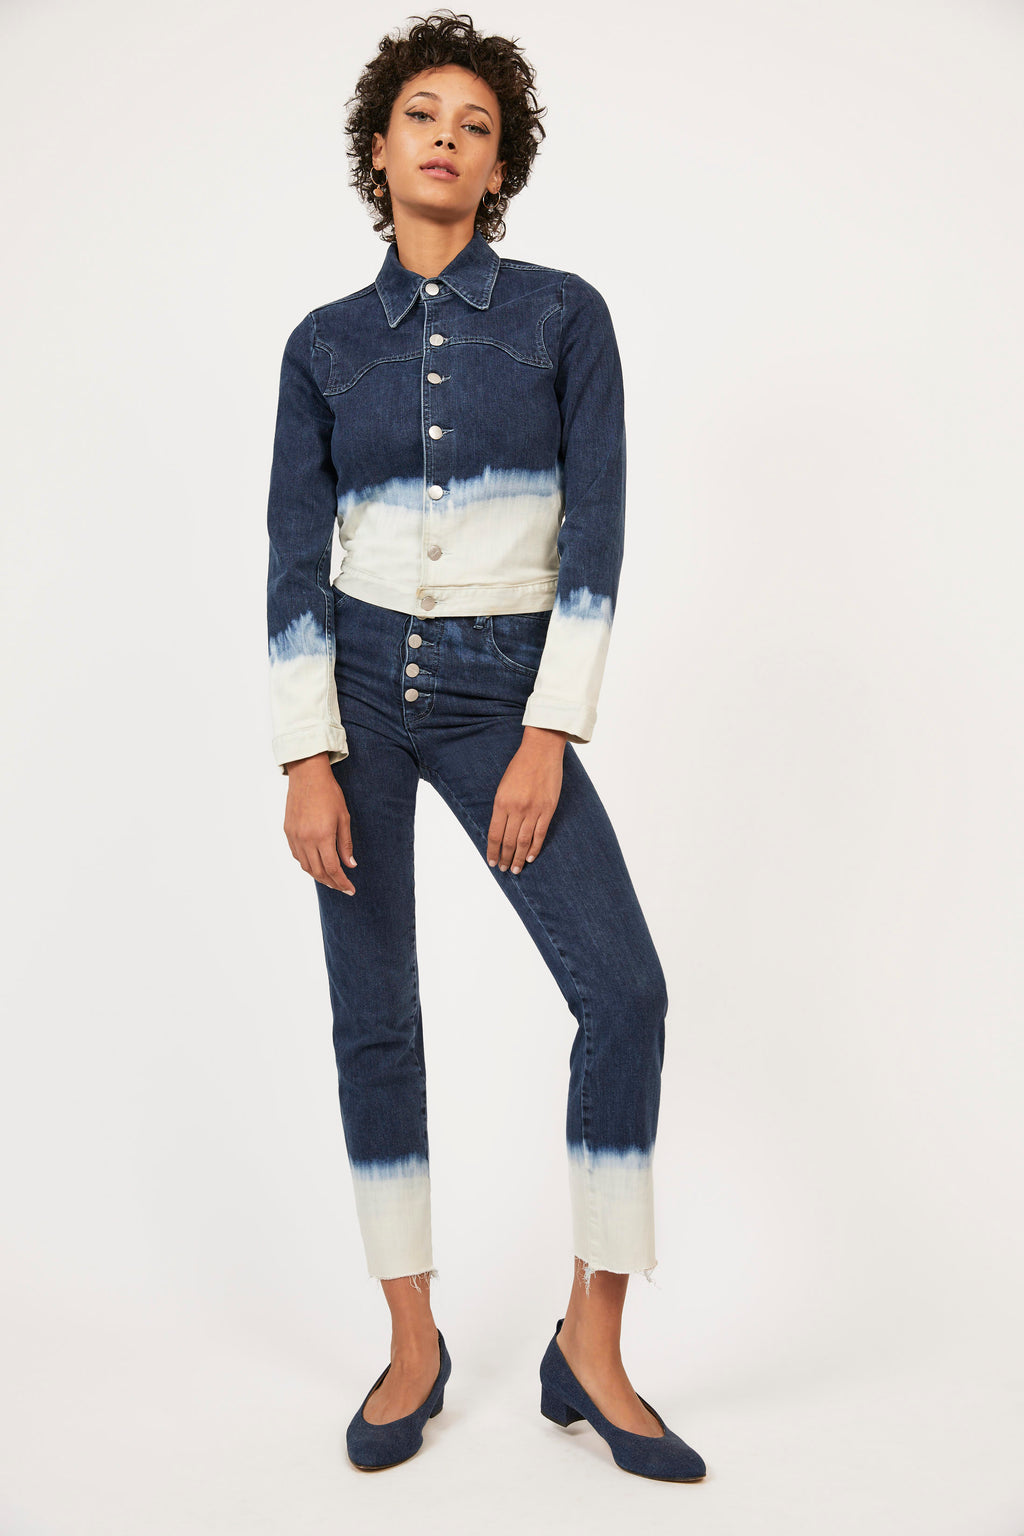 JUNIOR JEANS - INDIGO/WHITE DIP DYE